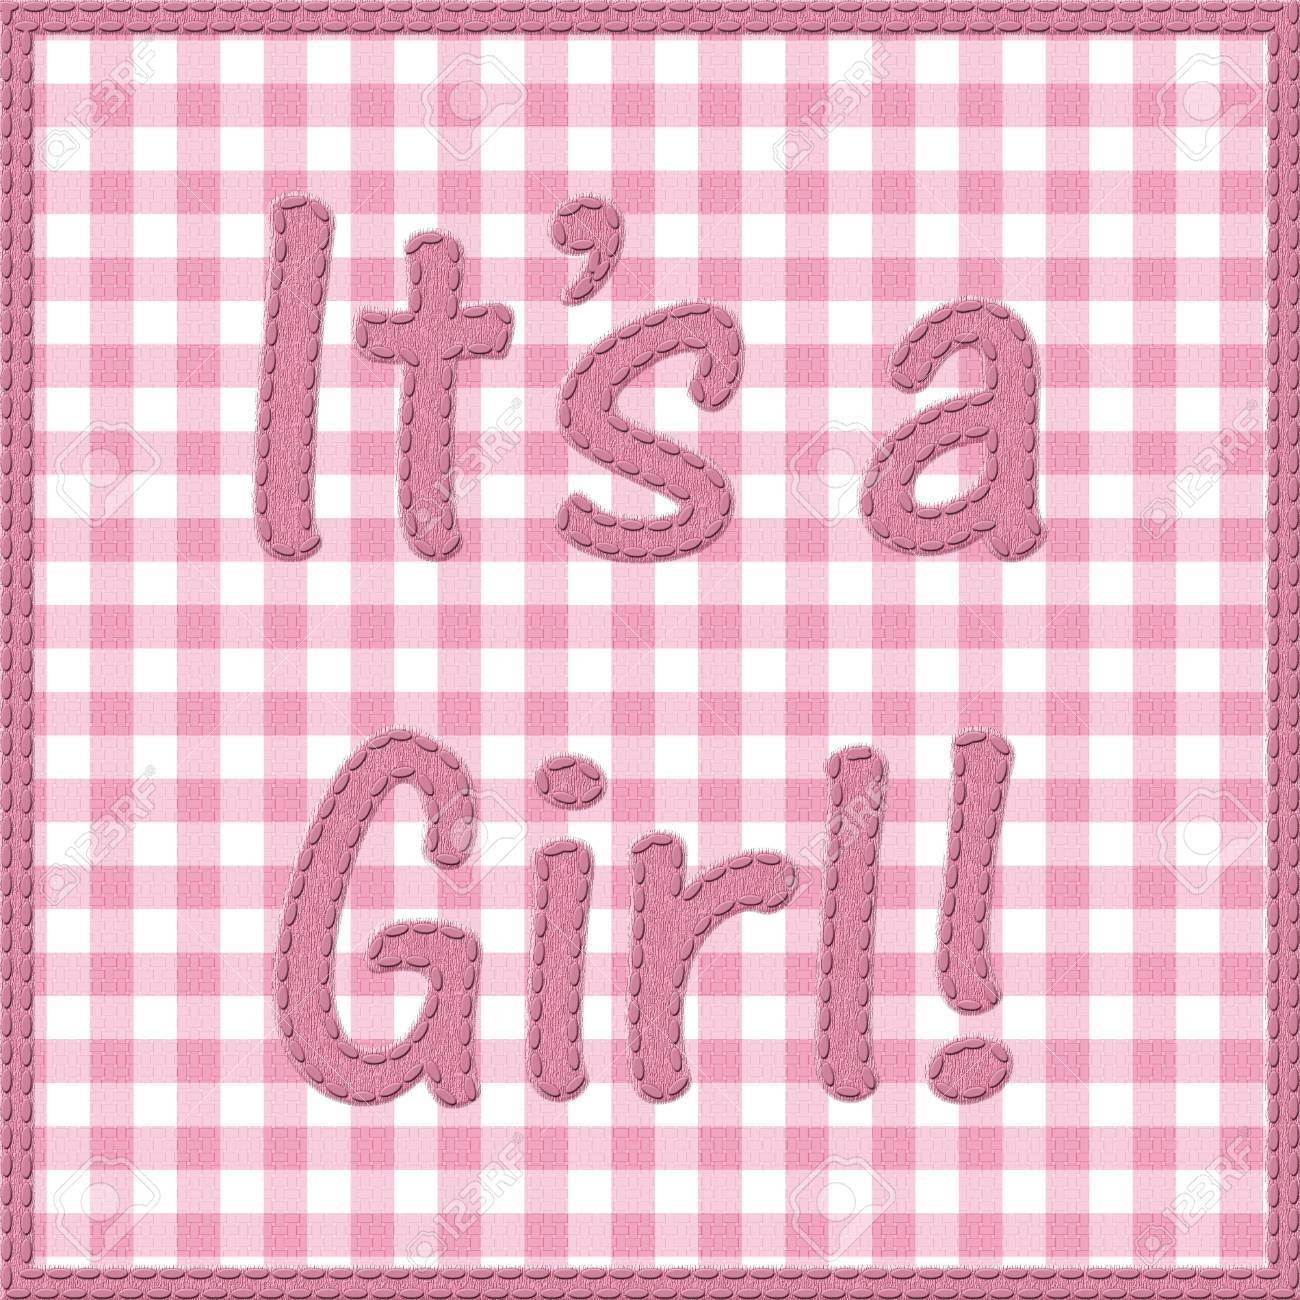 stock photo words it is a girl sewn on pink gingham material it is a girl baby announcement